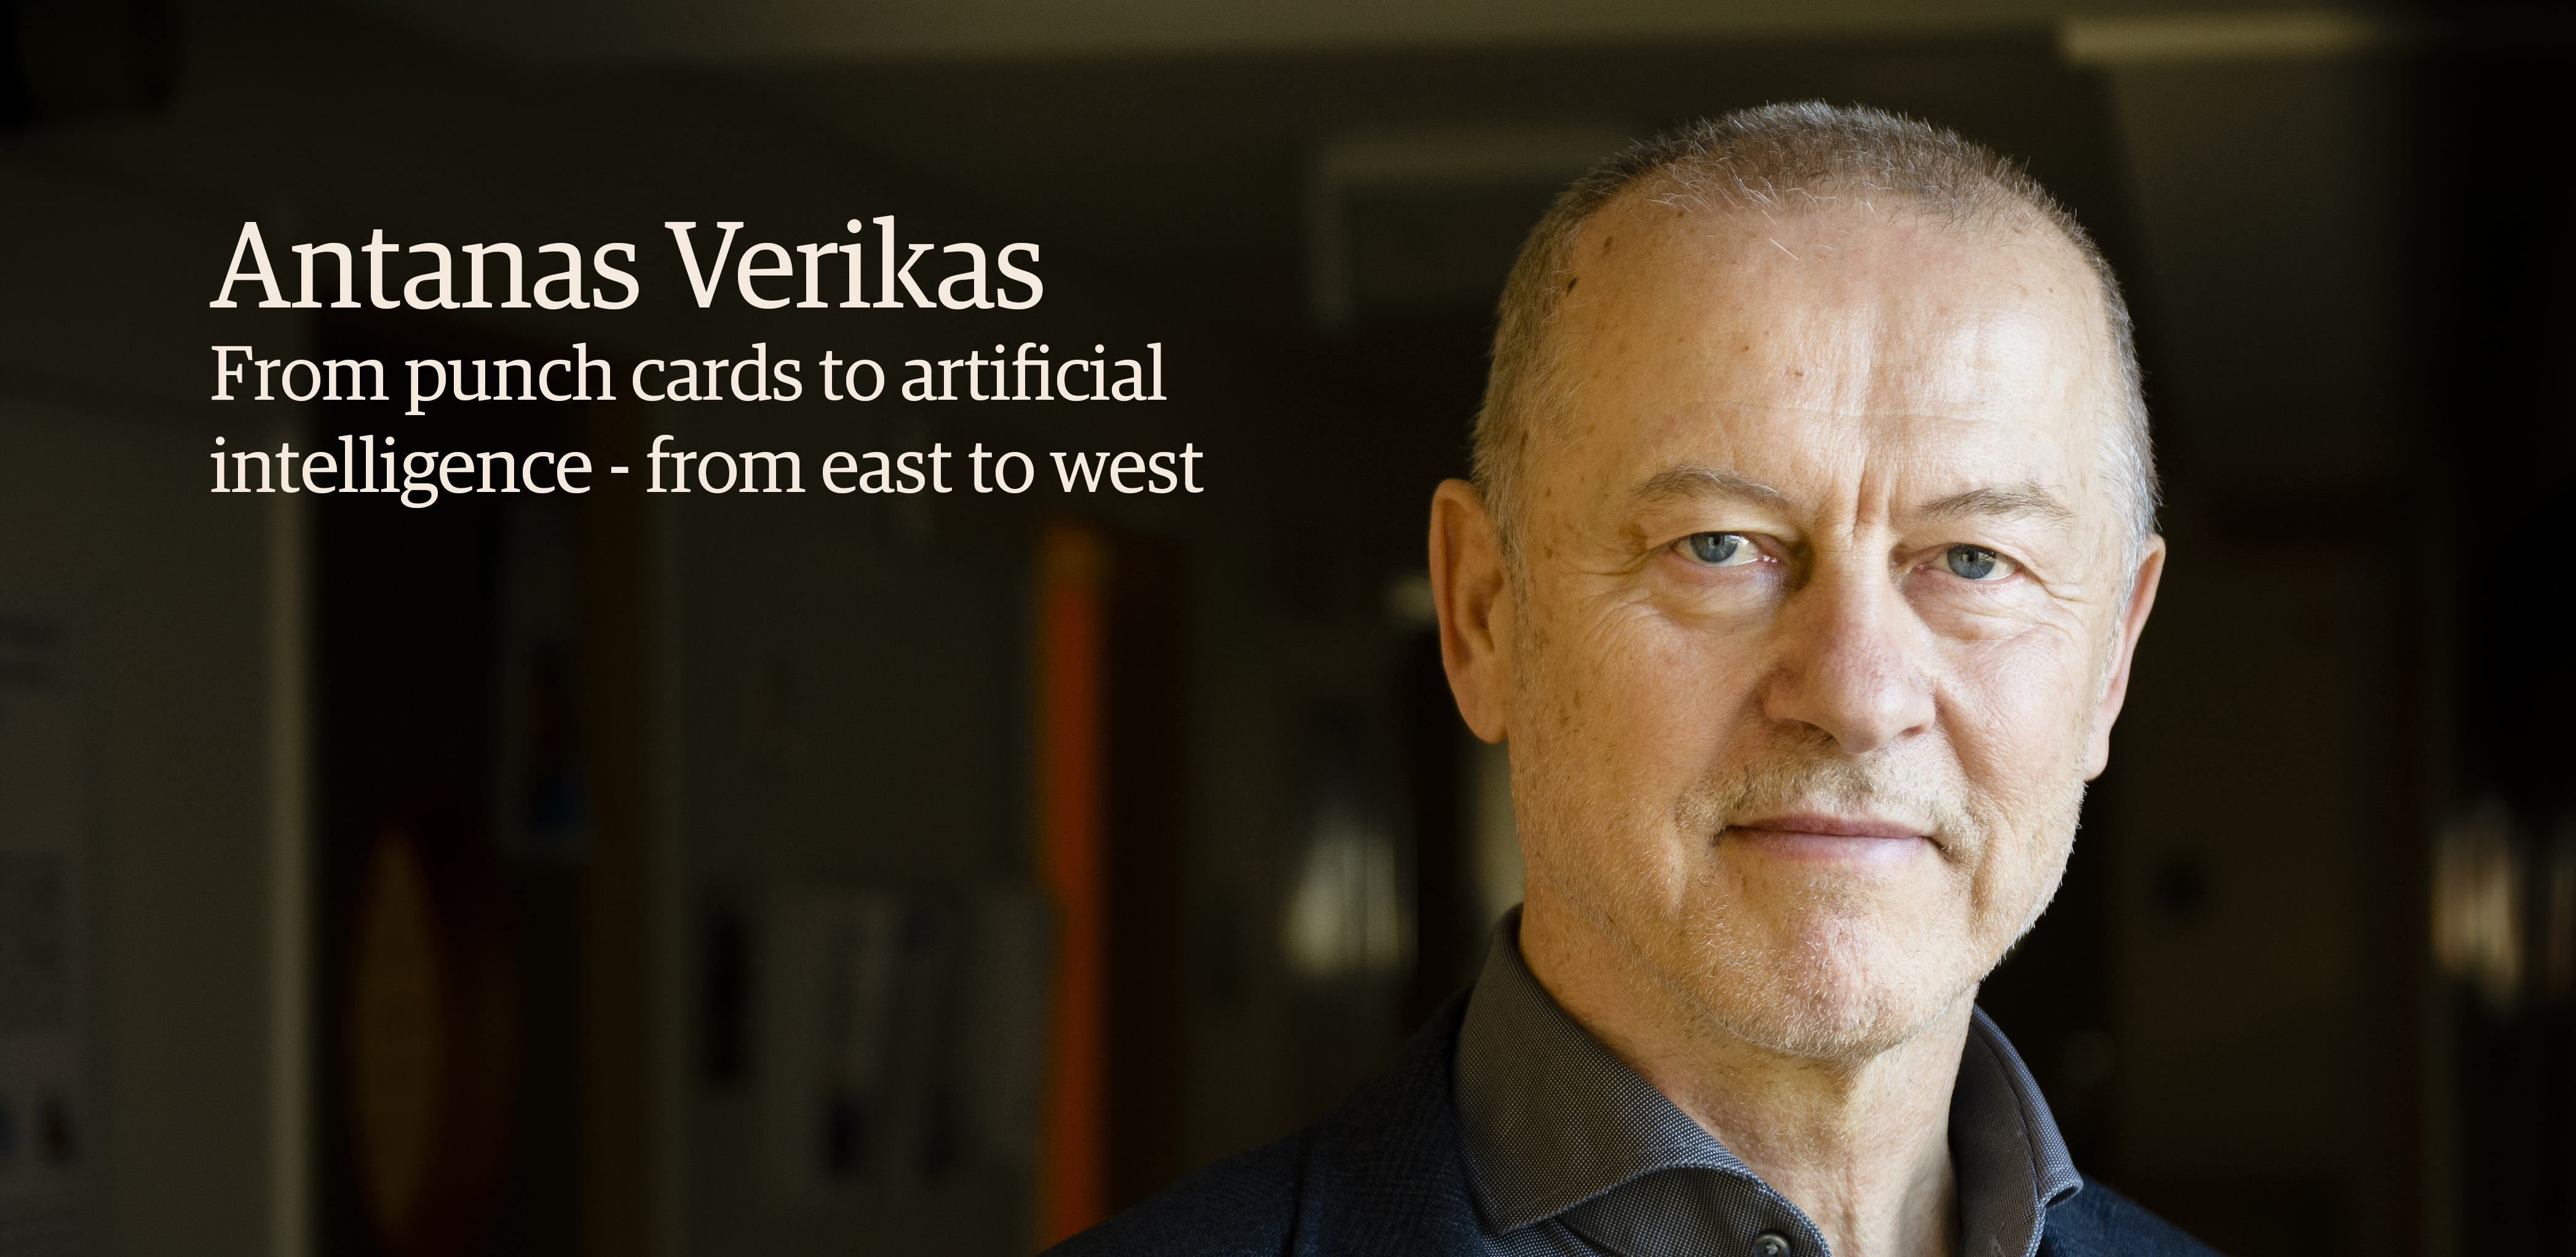 Meet Antanas Verikas. From punch cards to artificiell intelligence - from east to west